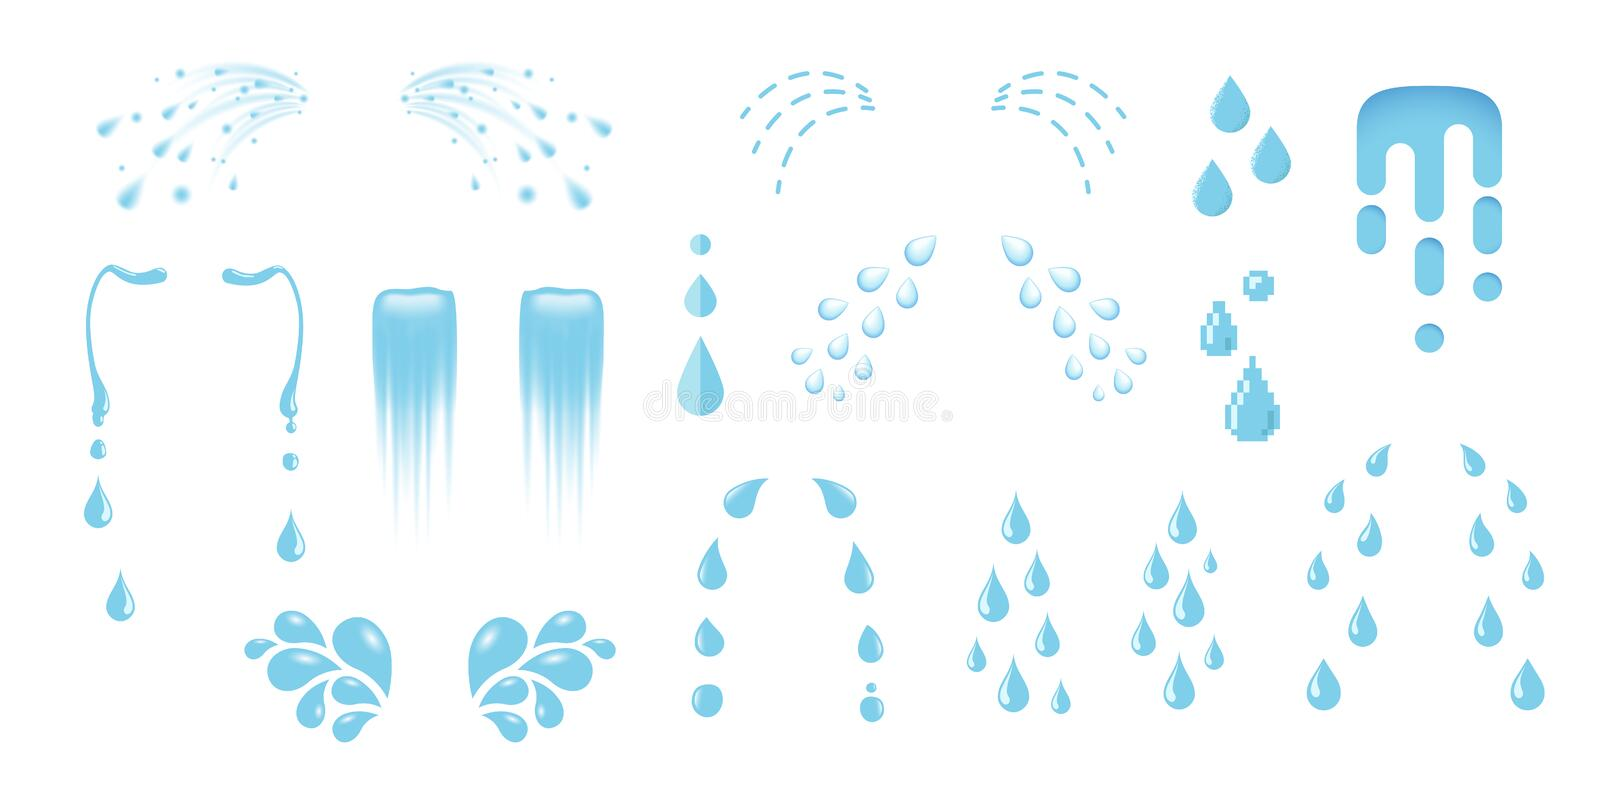 Shedding tears, tear streams, tears drops flows, crying, weeping, sobbing or mourning vector illustrations in various styles royalty free stock photo